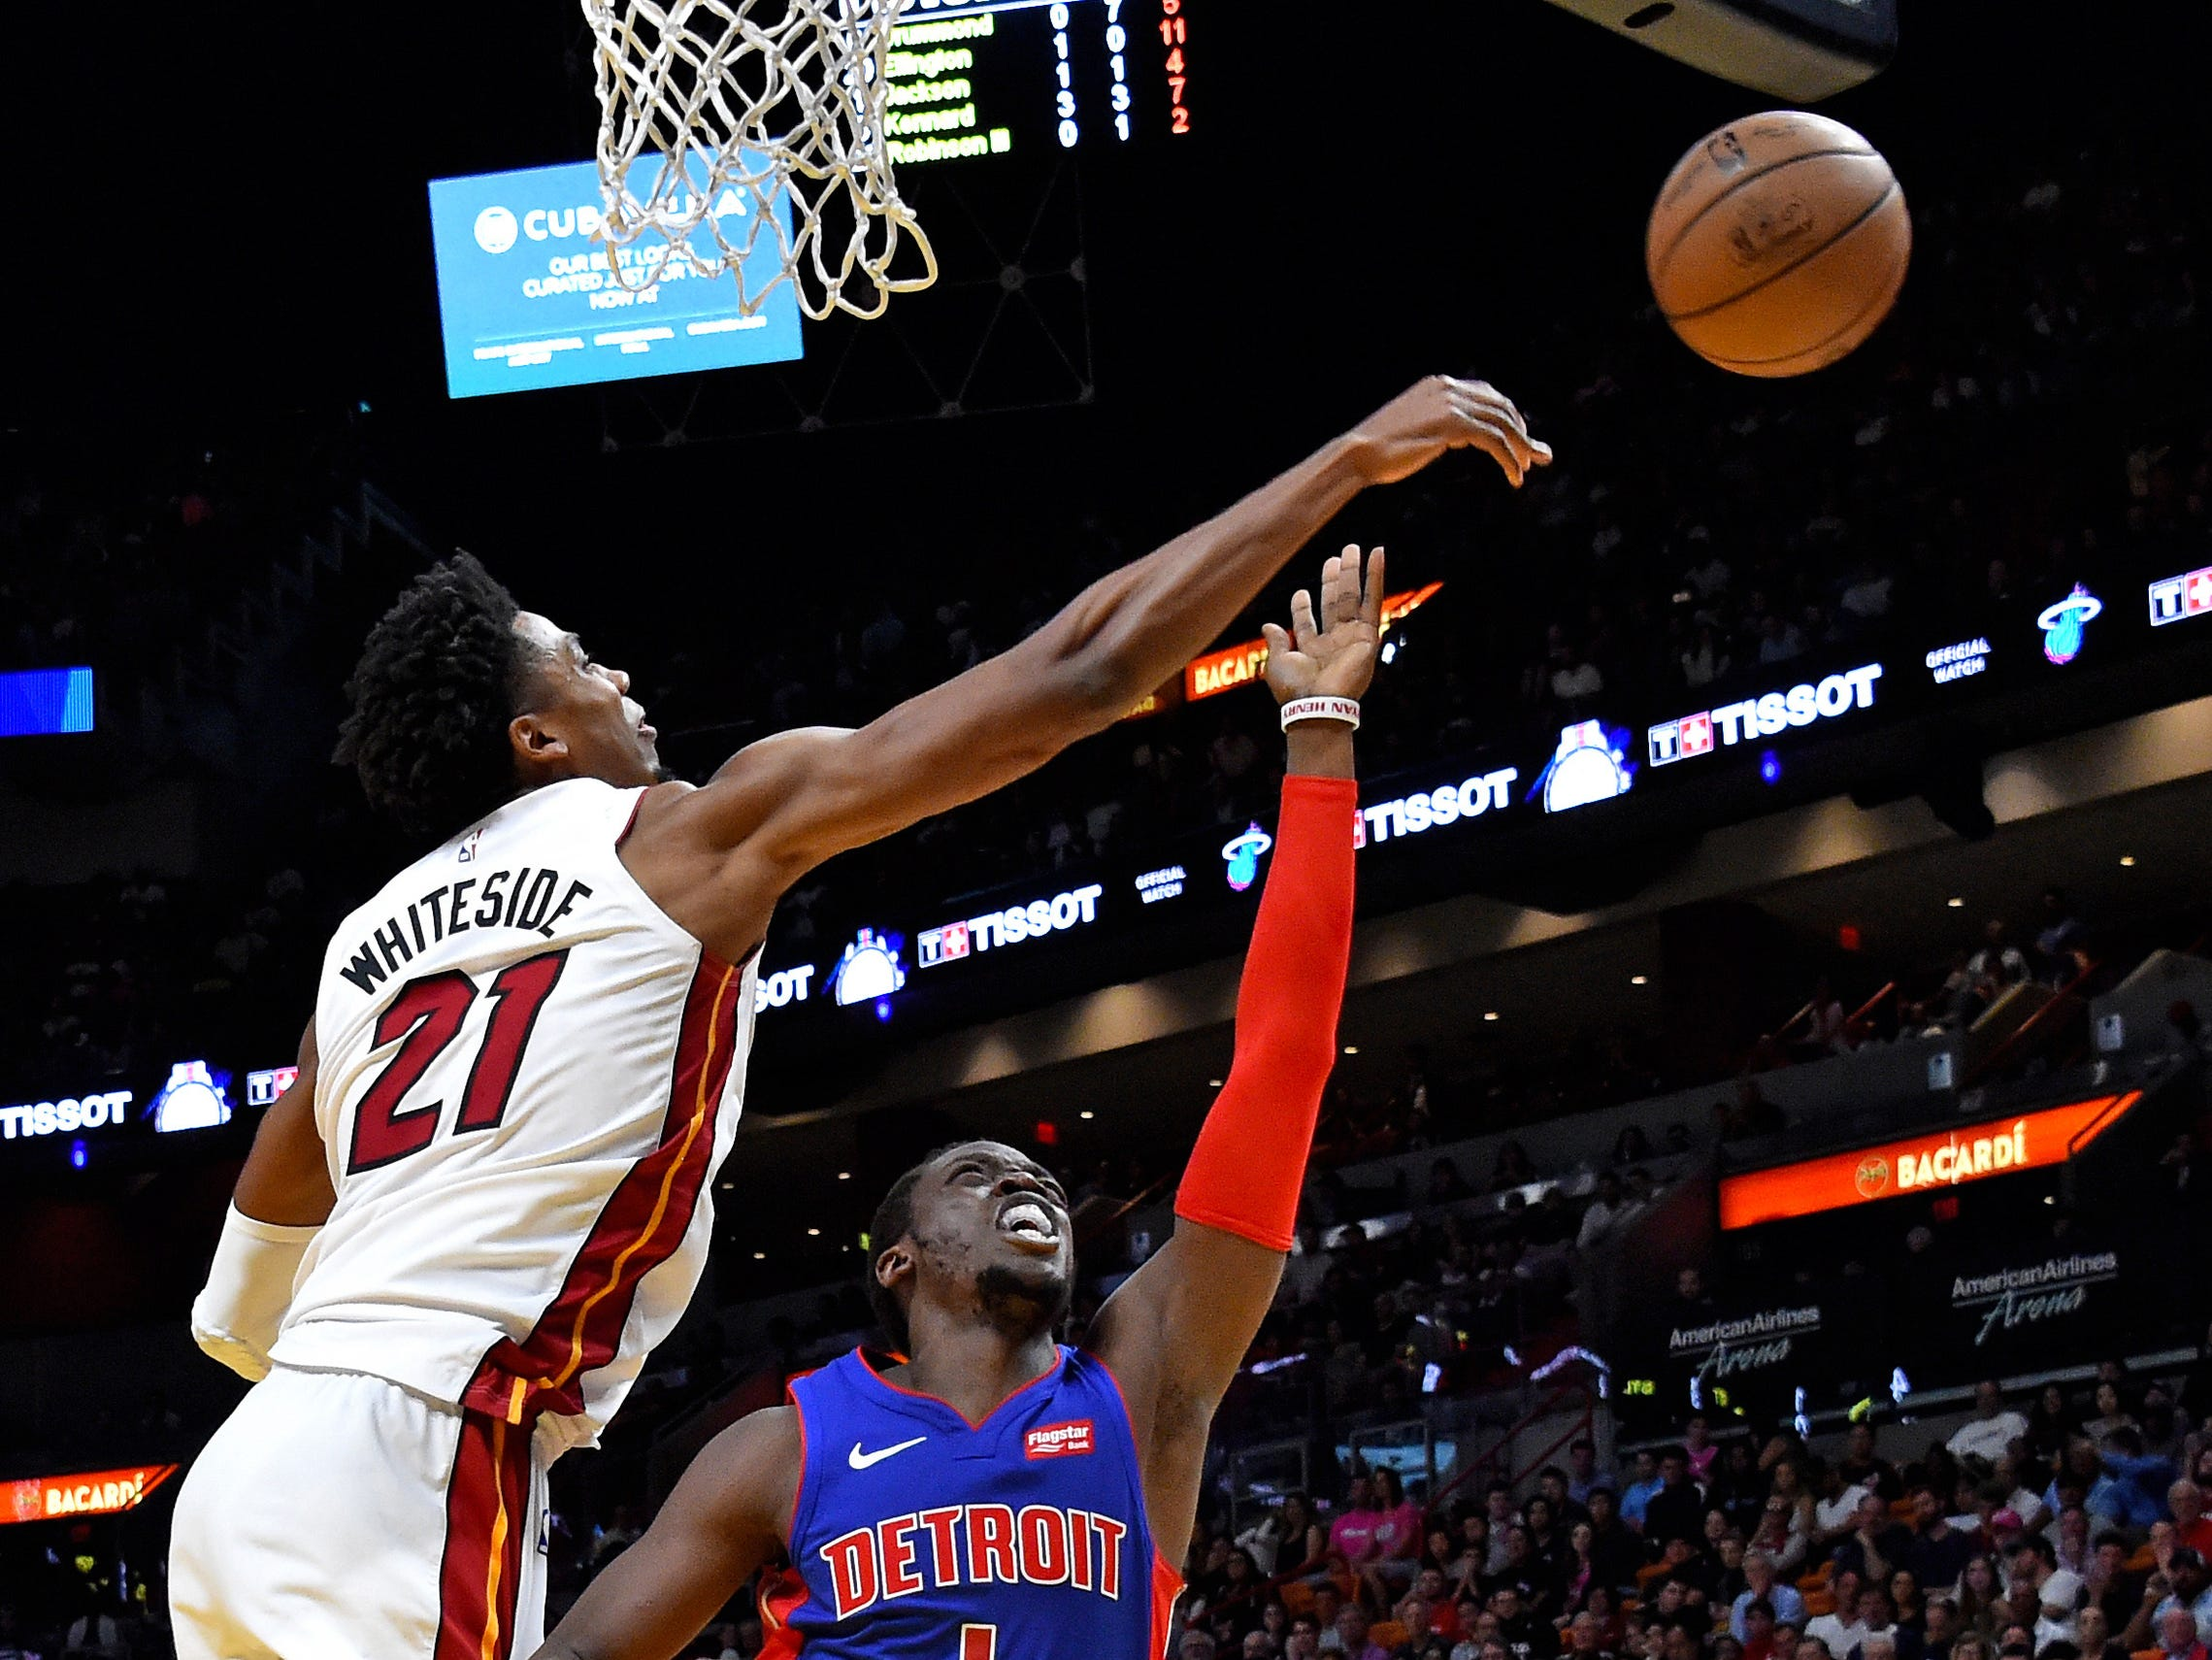 Miami Heat center Hassan Whiteside (21) blocks the shot from Detroit Pistons guard Reggie Jackson (1) during the second half at American Airlines Arena on Wednesday, March 13, 2019.